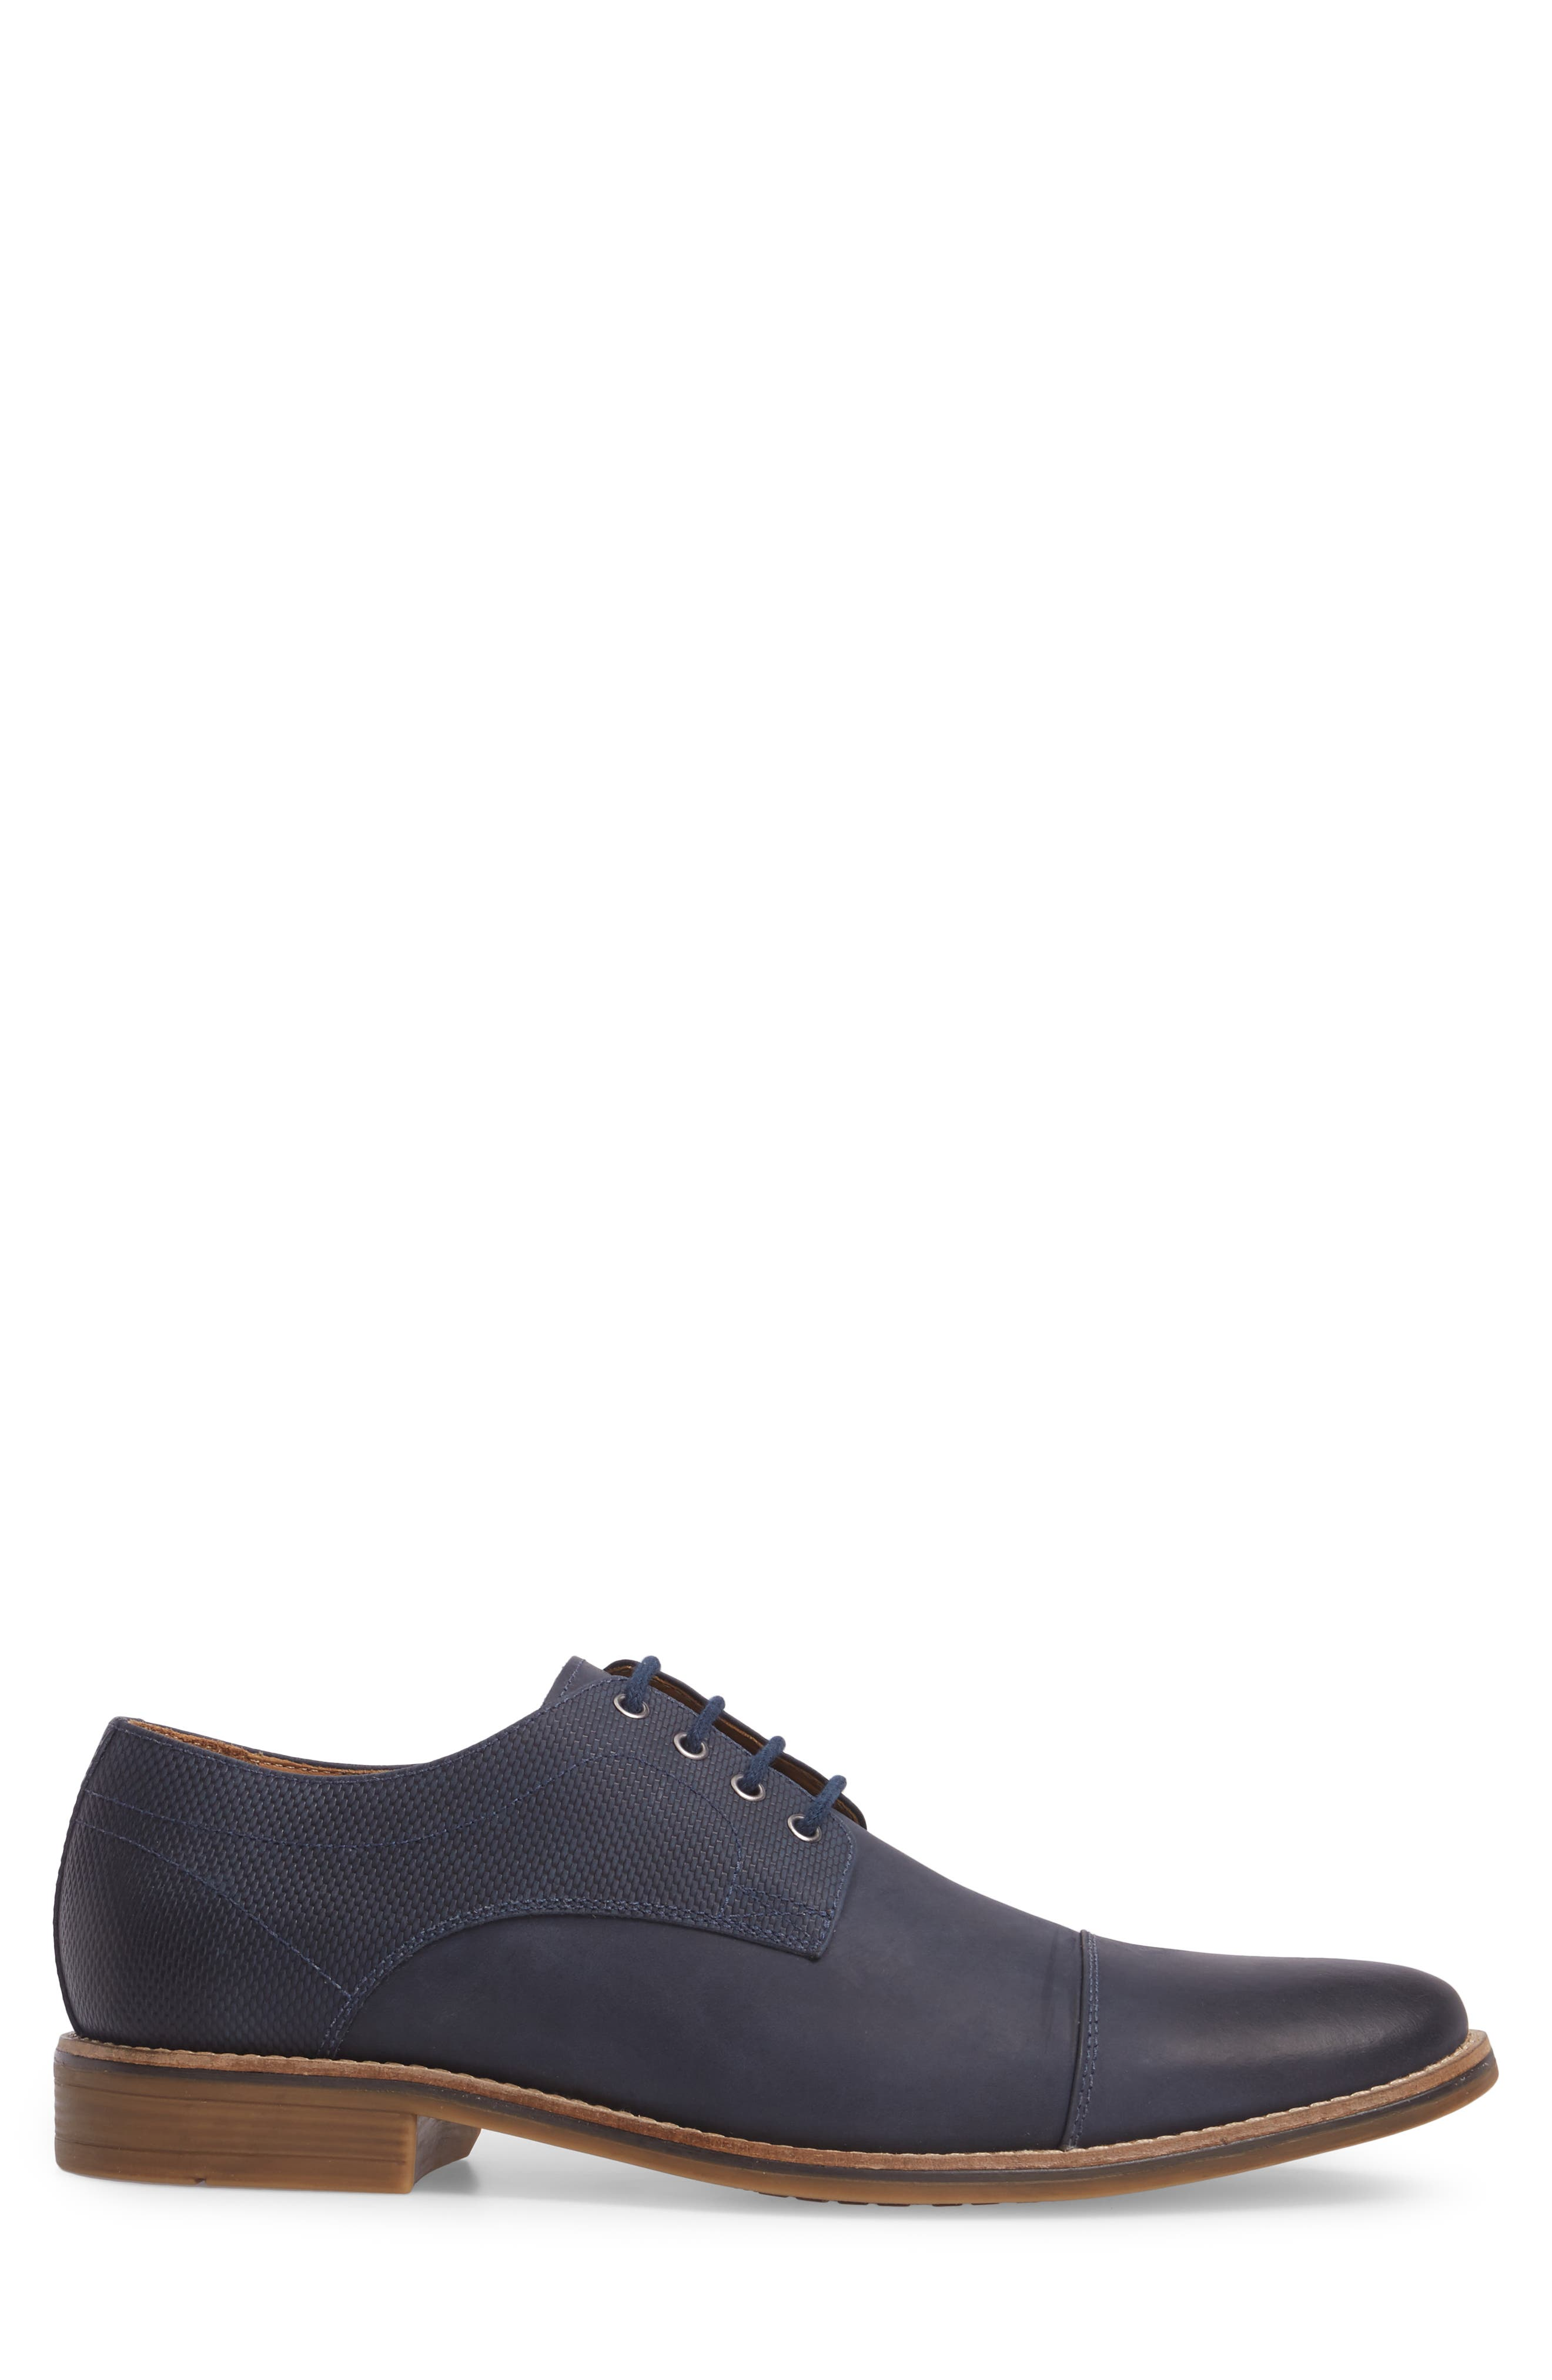 Goleta Cap Toe Derby,                             Alternate thumbnail 3, color,                             Navy Leather